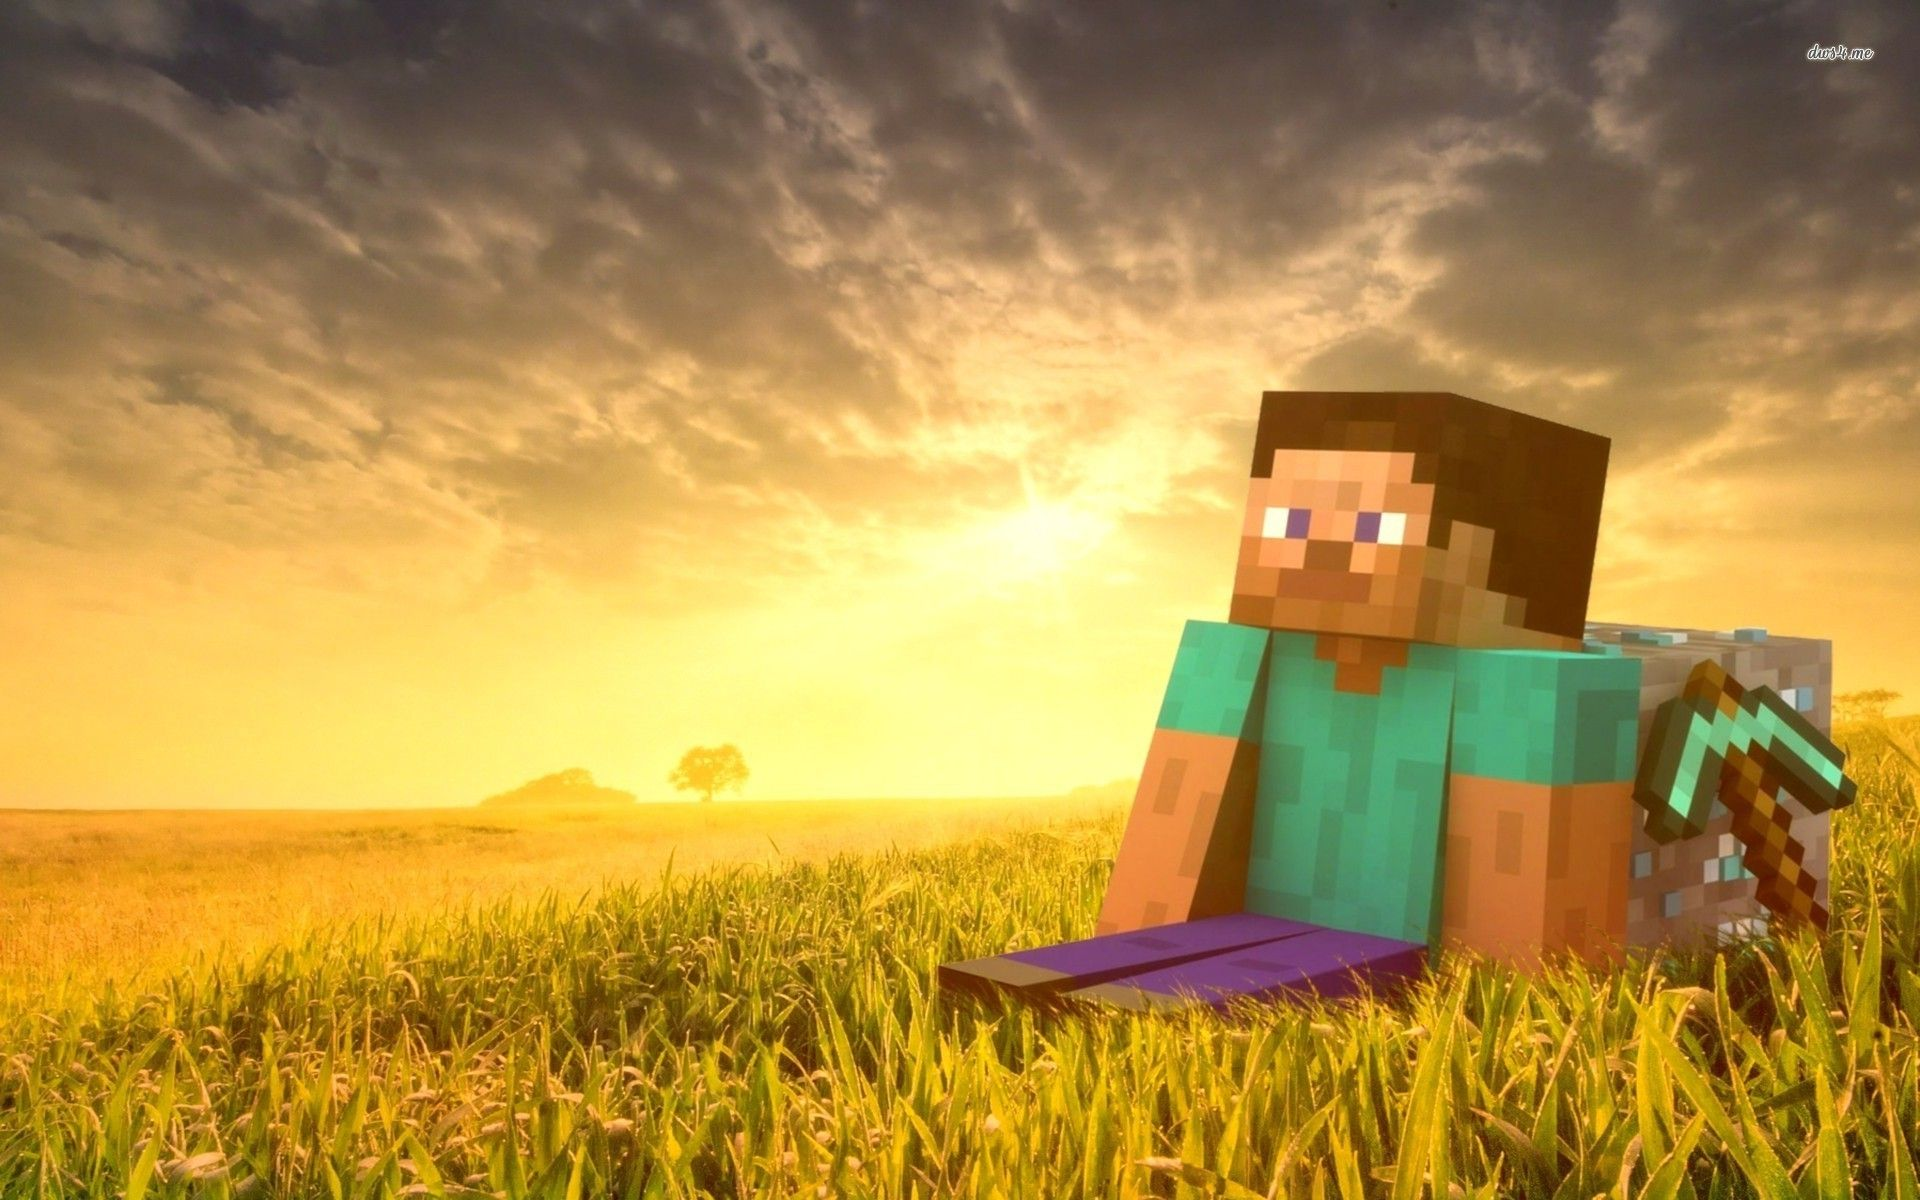 Amazing Wallpaper Minecraft Plain - 328664faa52b7a9ac65c90e1b7955f04  Best Photo Reference_845272.jpg